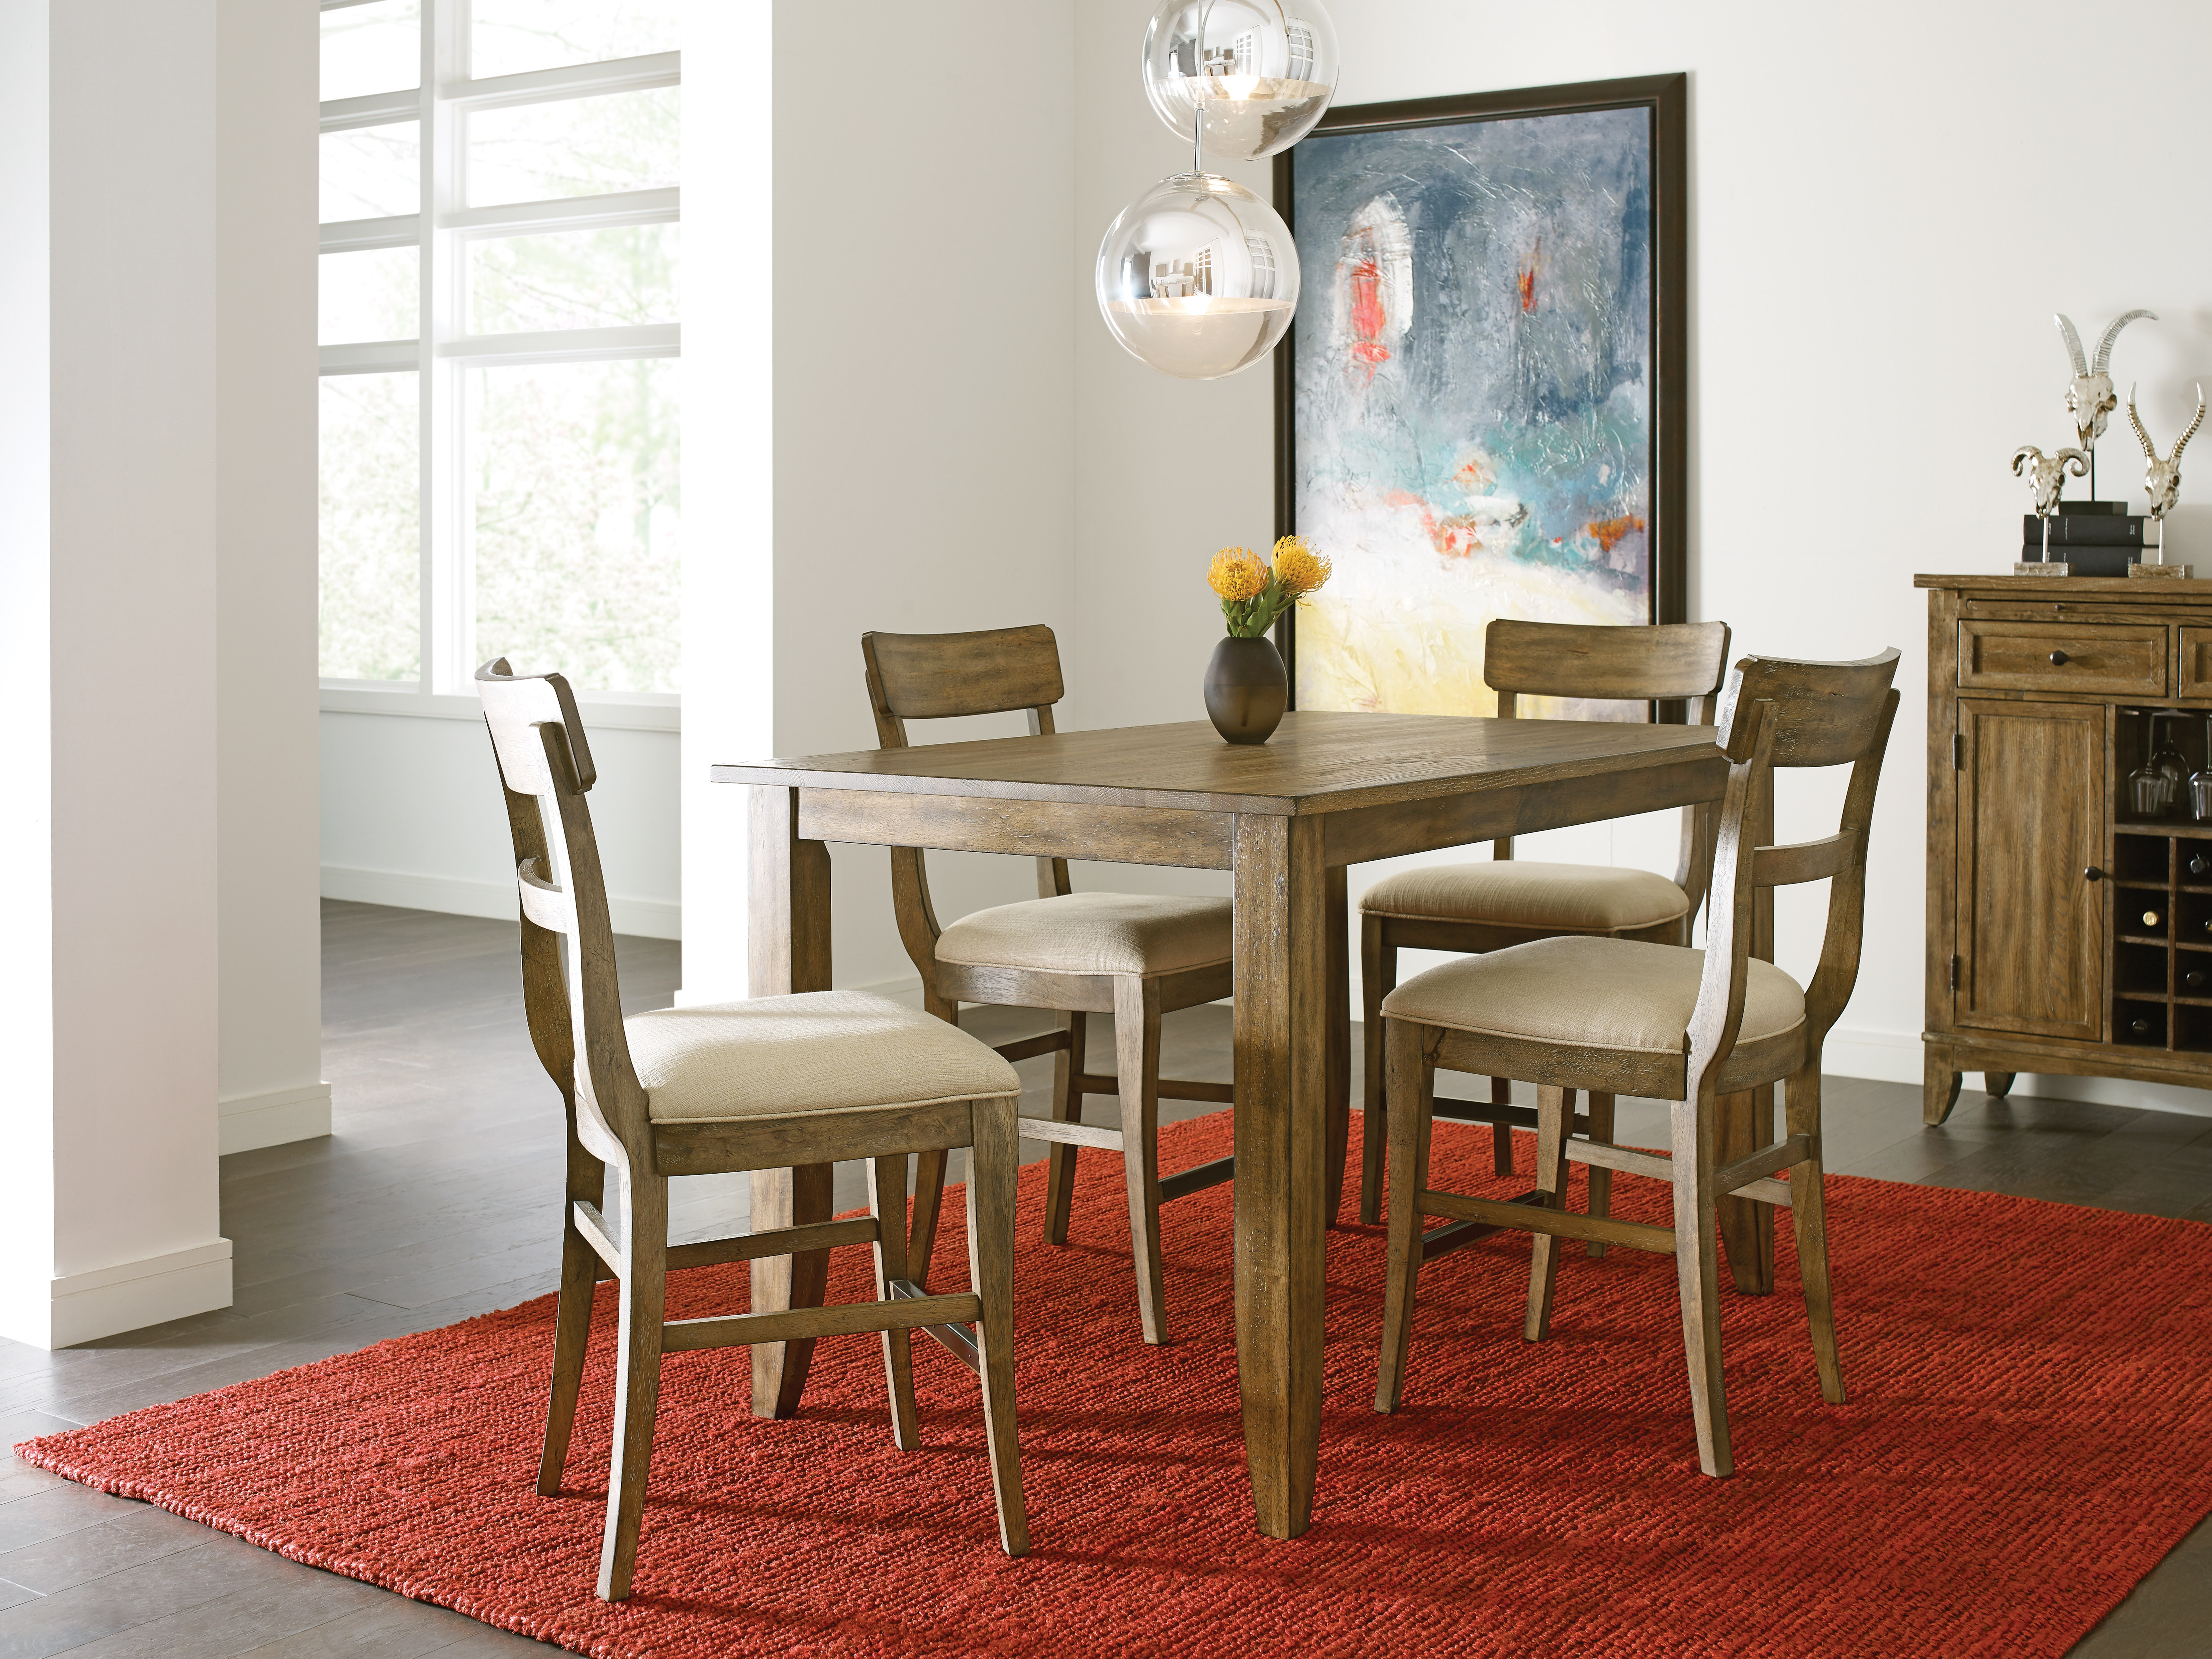 The Nook Oak Counter Height Leg Table ST:486394